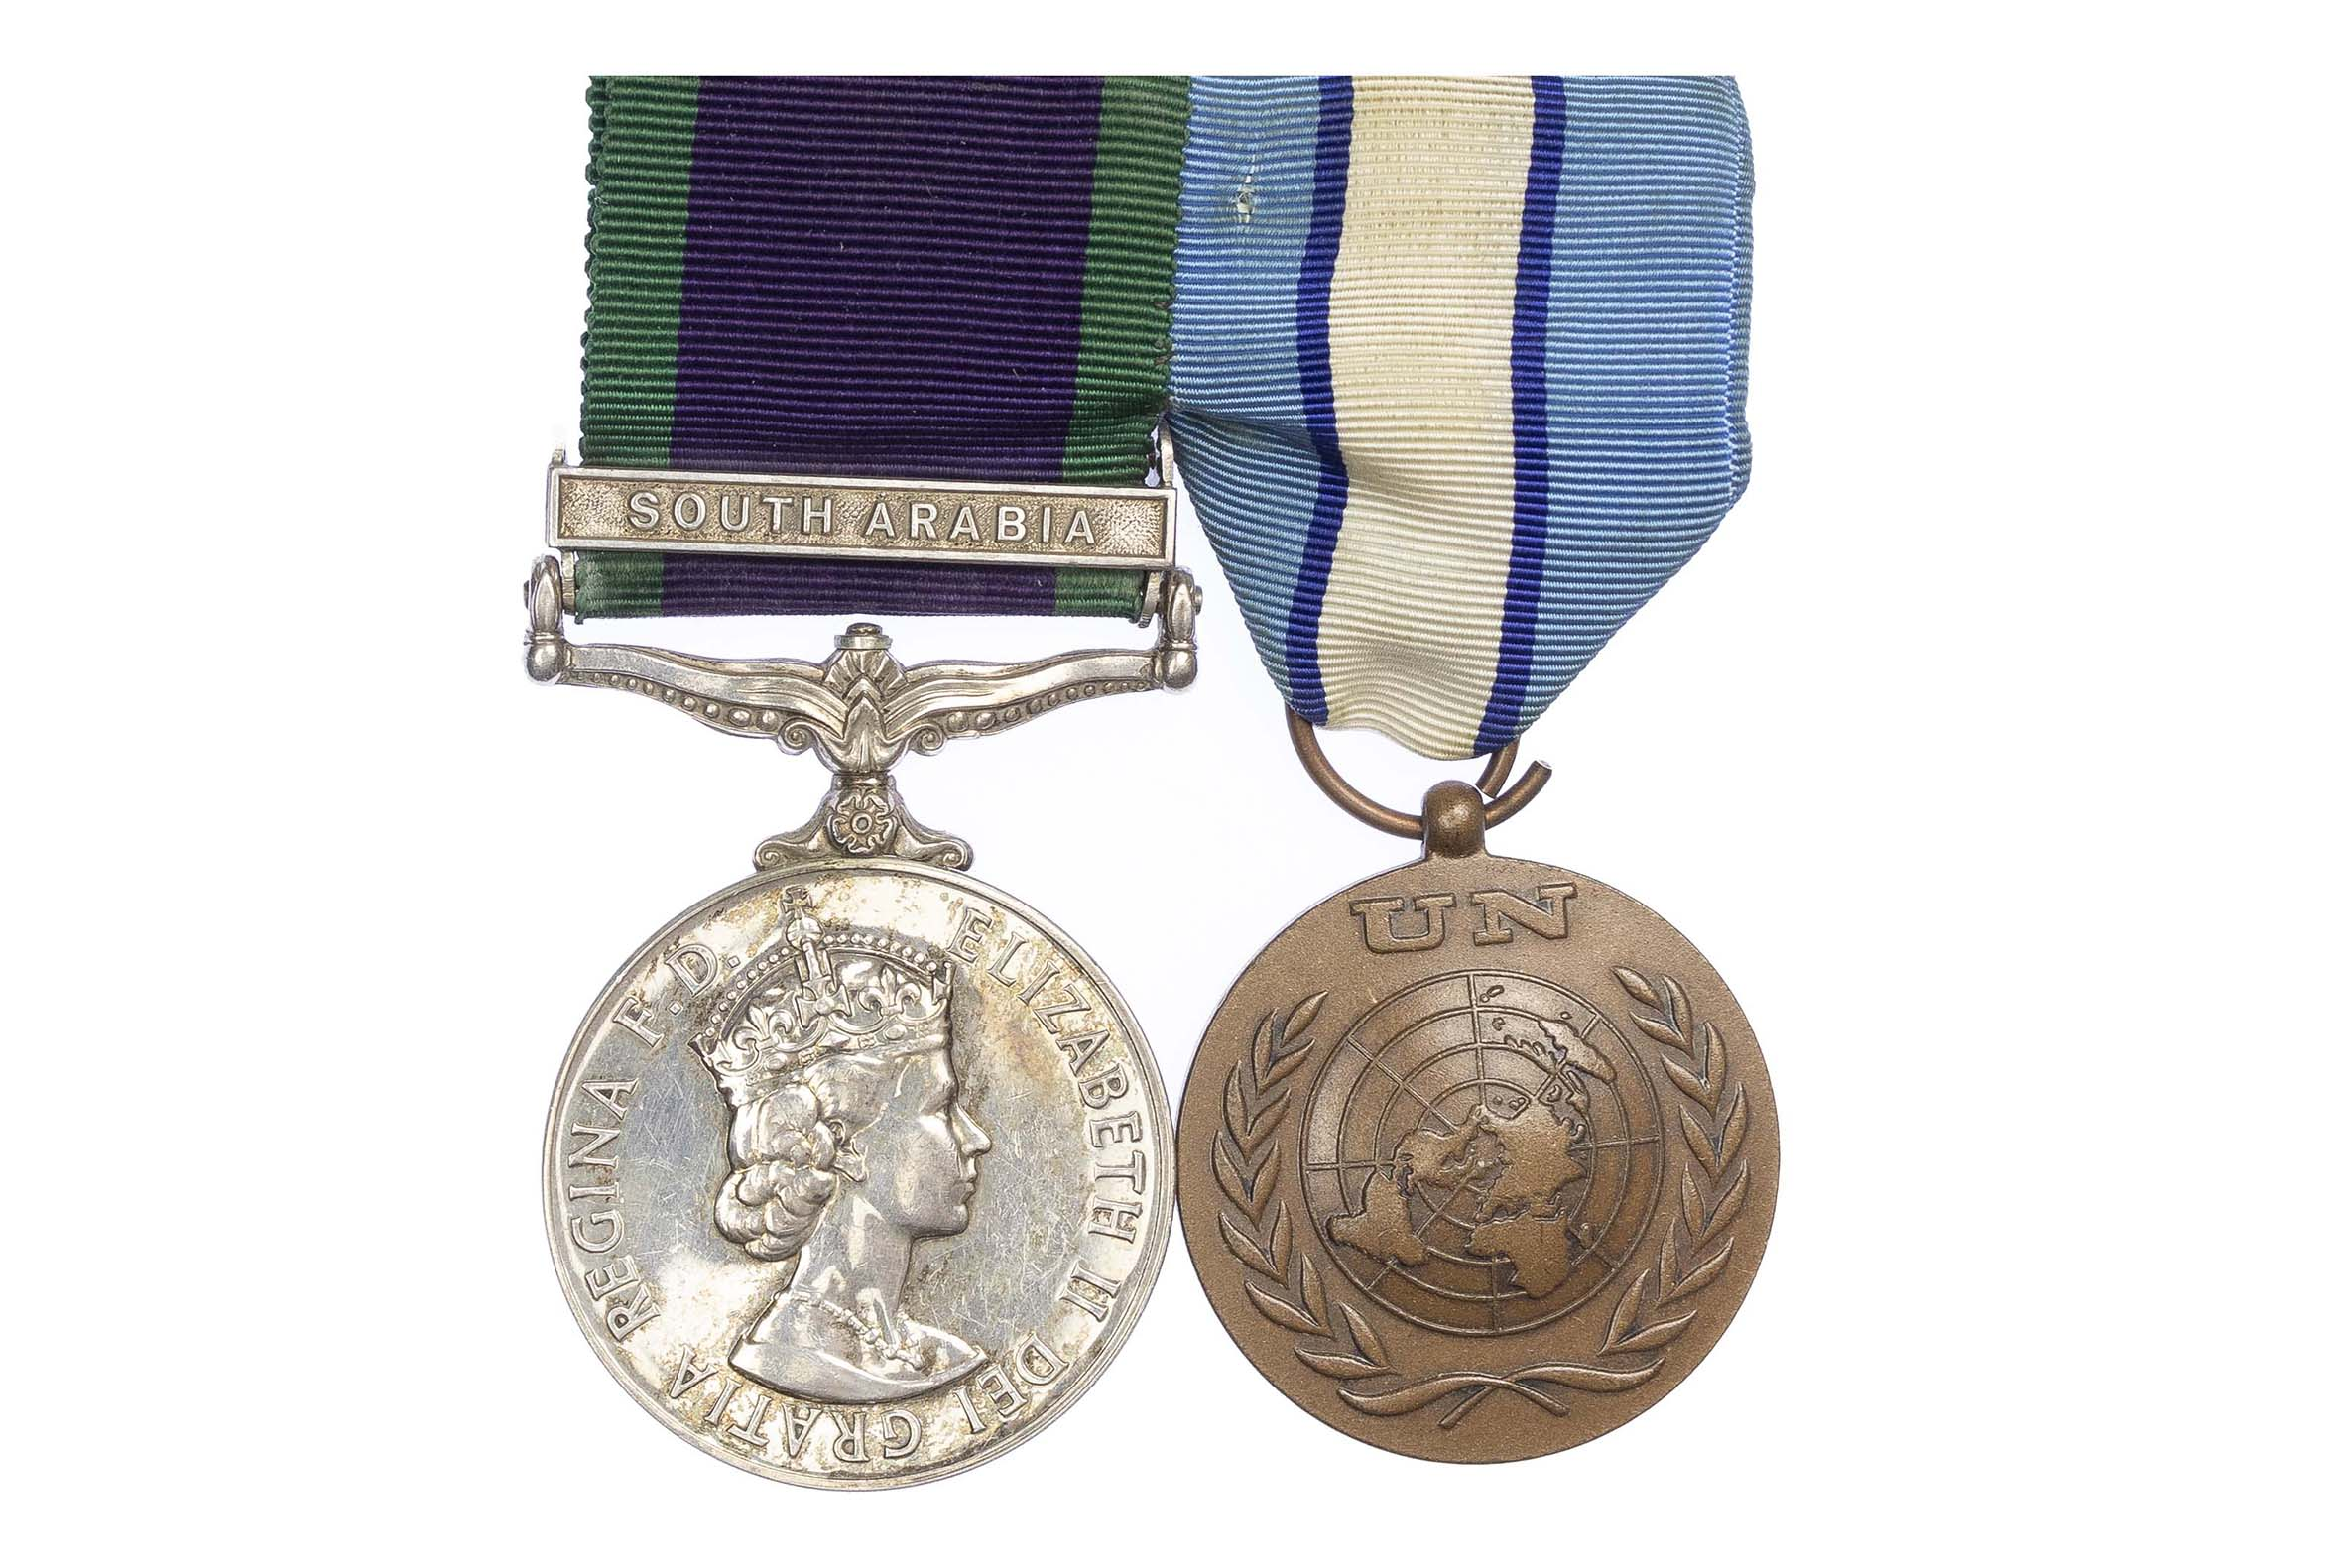 General Service Medal 1962-2007, one clasp, South Arabia, United Nations Cyprus Medal Pair to Private J. Bale